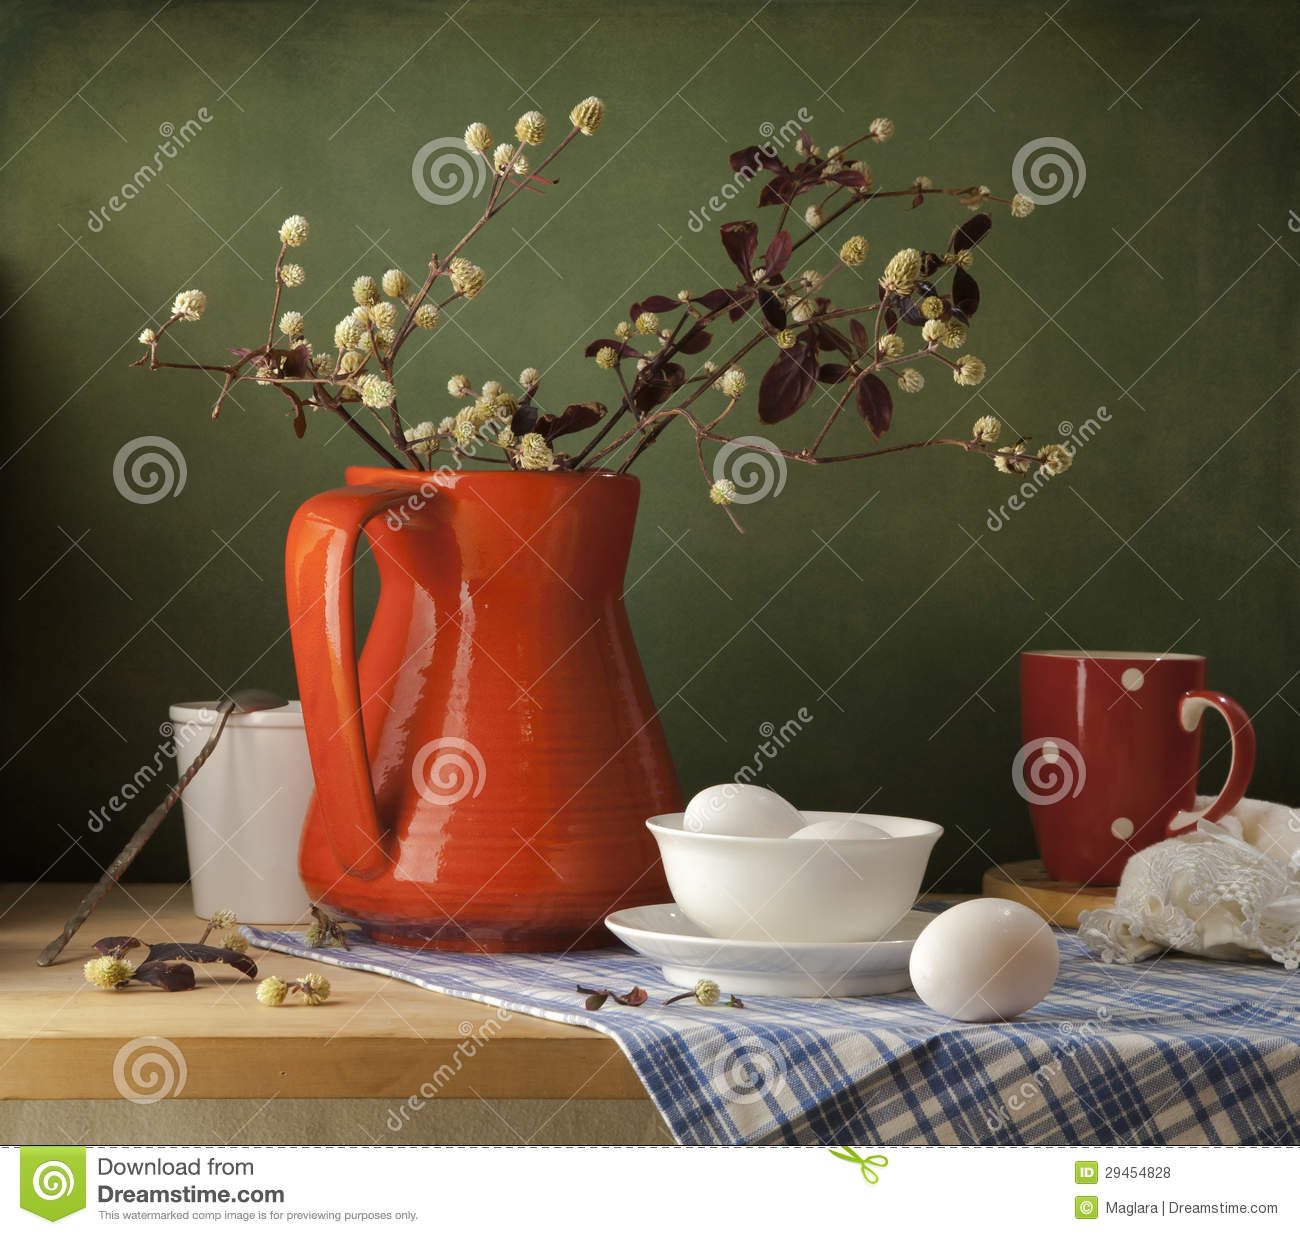 Still life with eggs and red jug